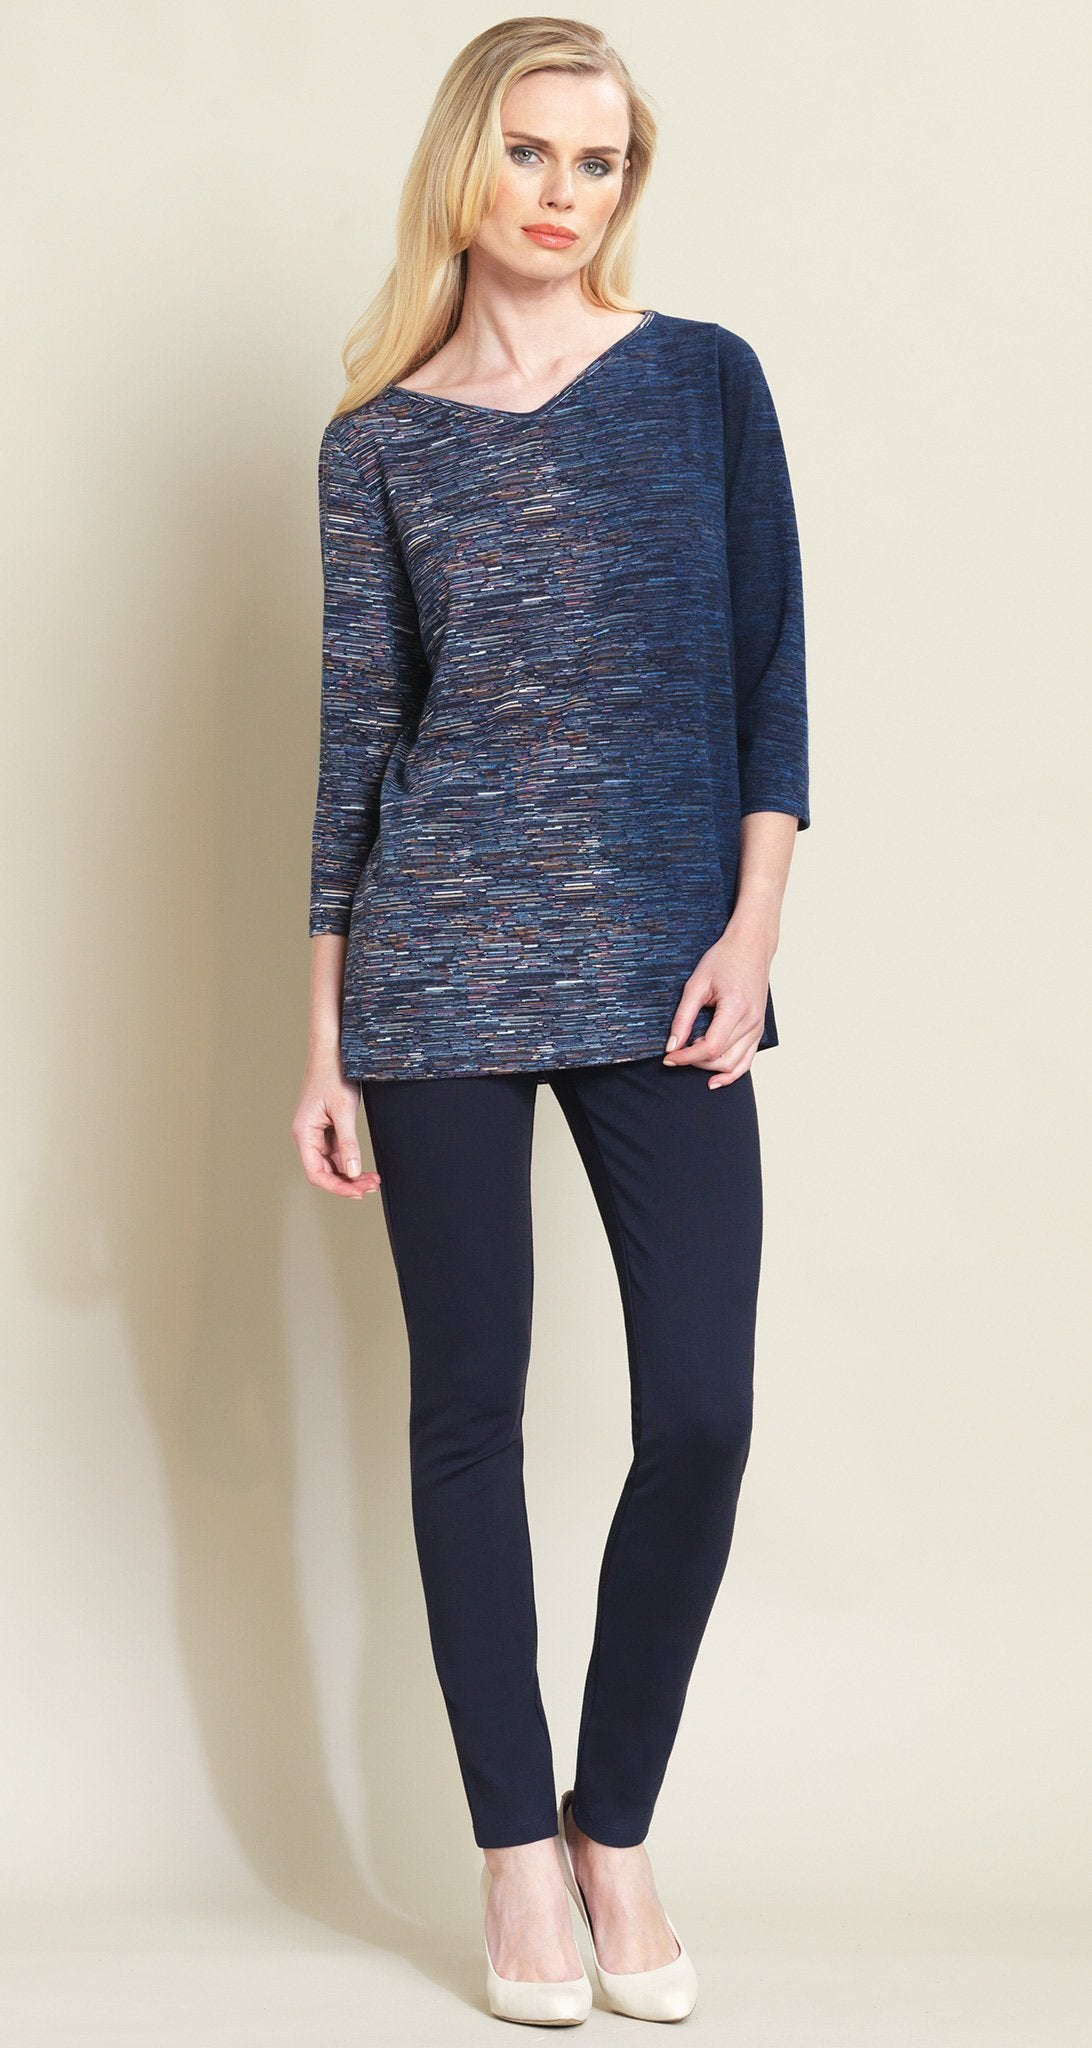 Ombre Stripes Sweater Tunic - Navy - Limited Sizes! - Clara Sunwoo